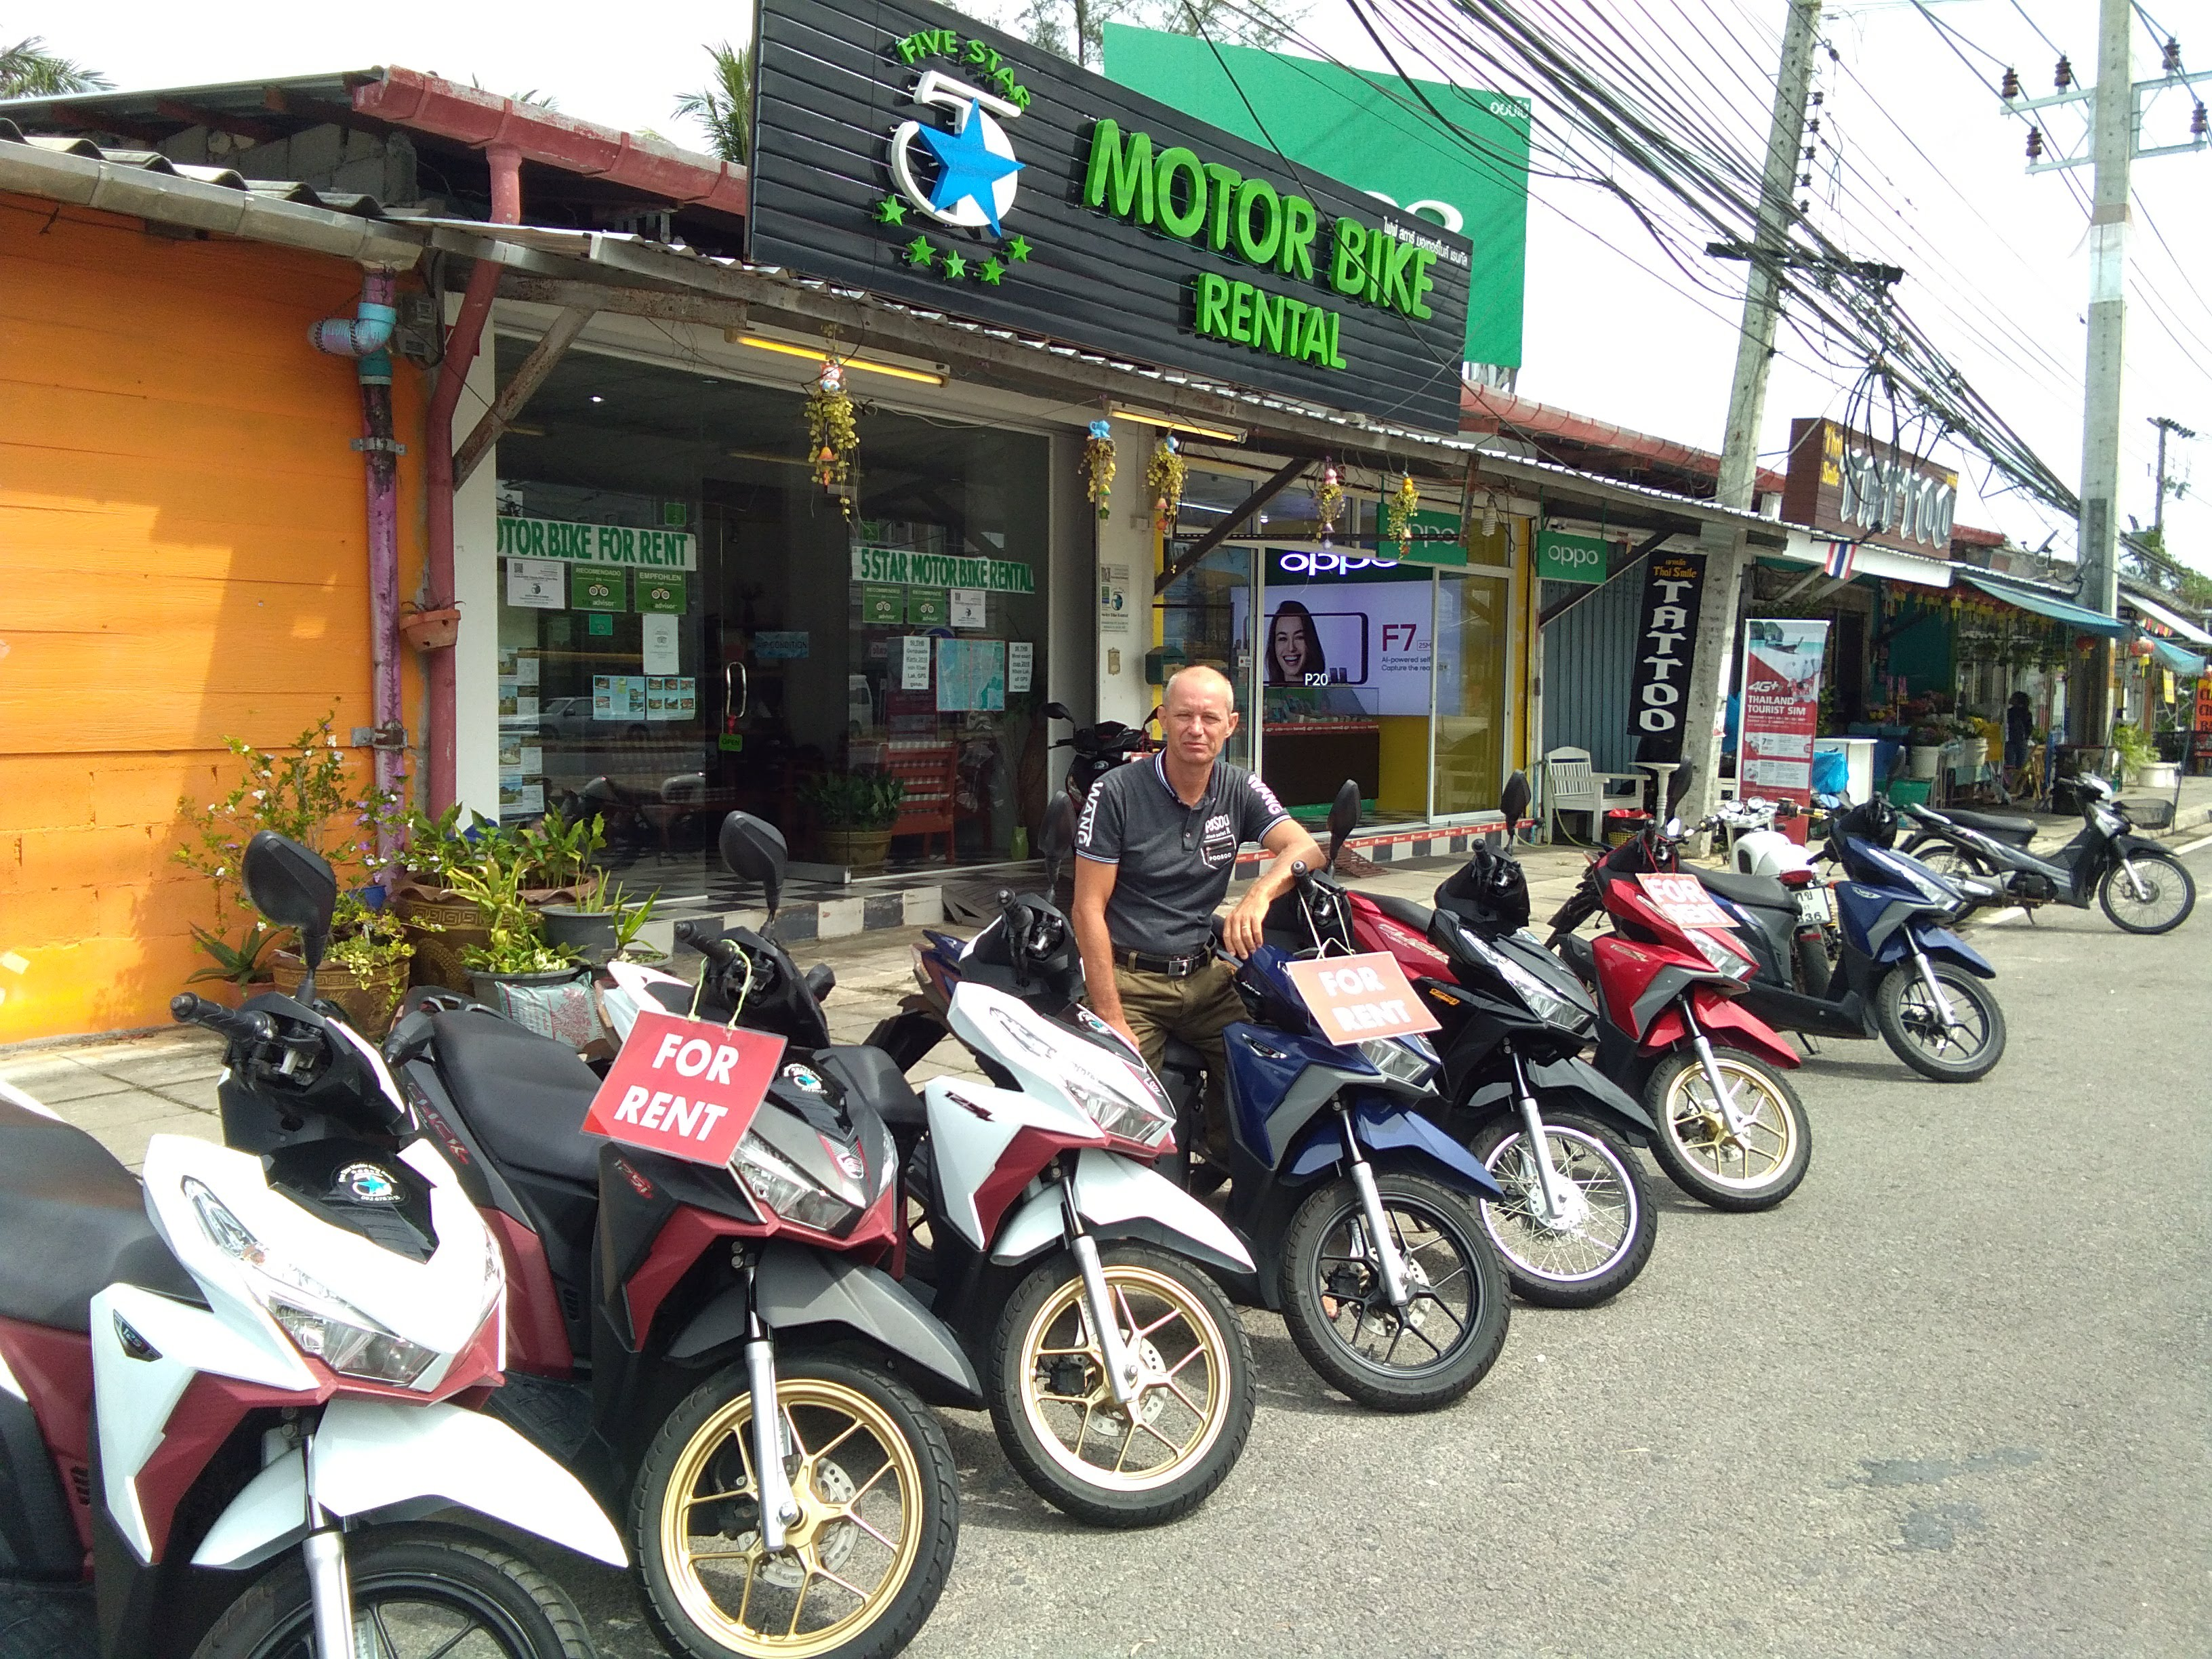 Khao Lak 5 Star Motor Bike Rental